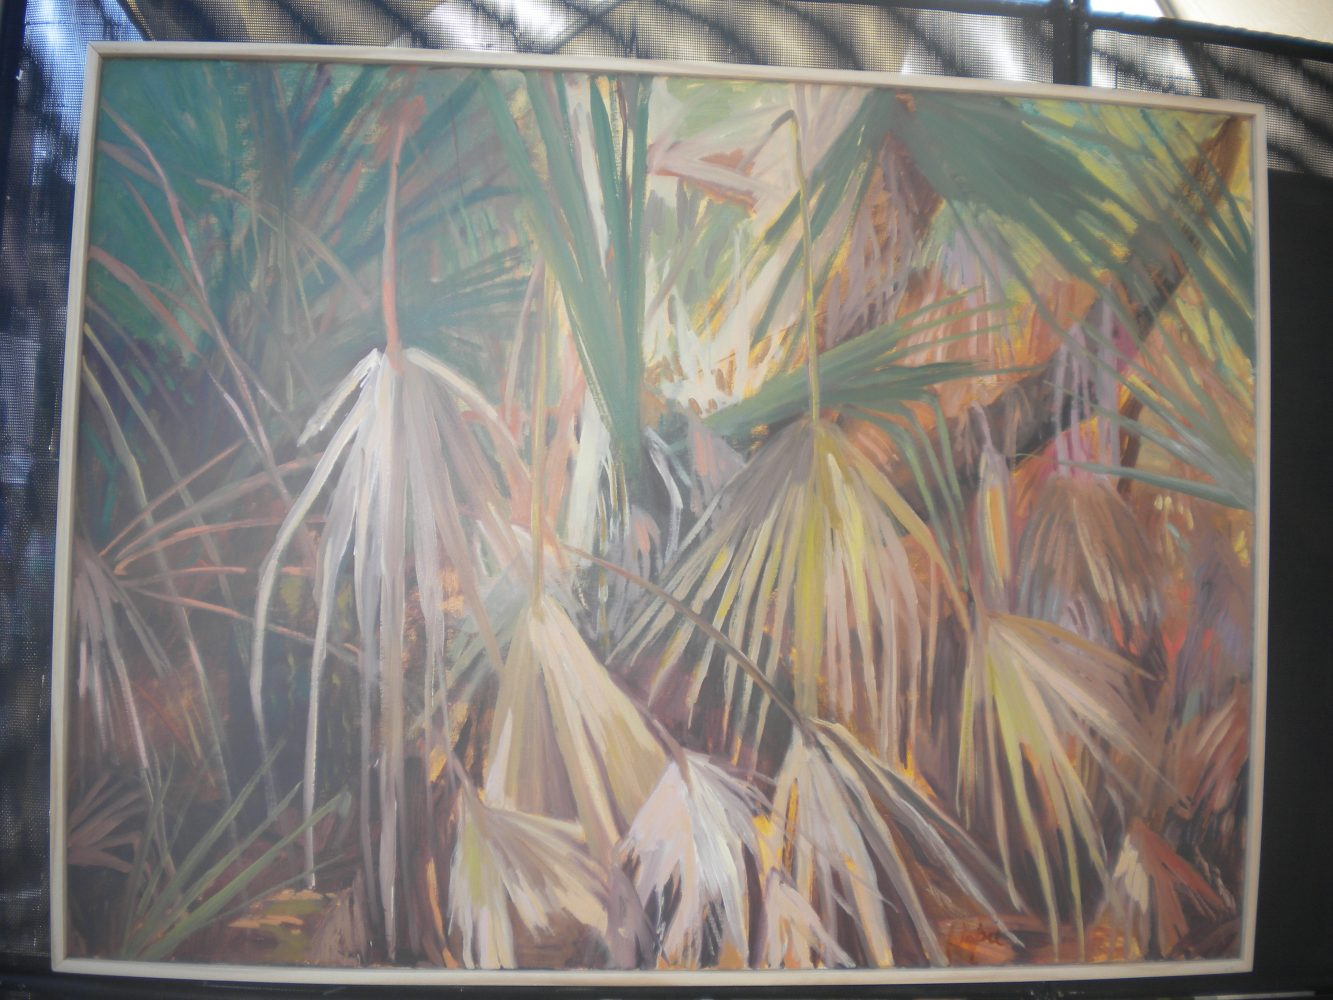 Artwork by Kathleen Wobble, one of the artists featured at the Gainesville Downtown Festival & Art Show.